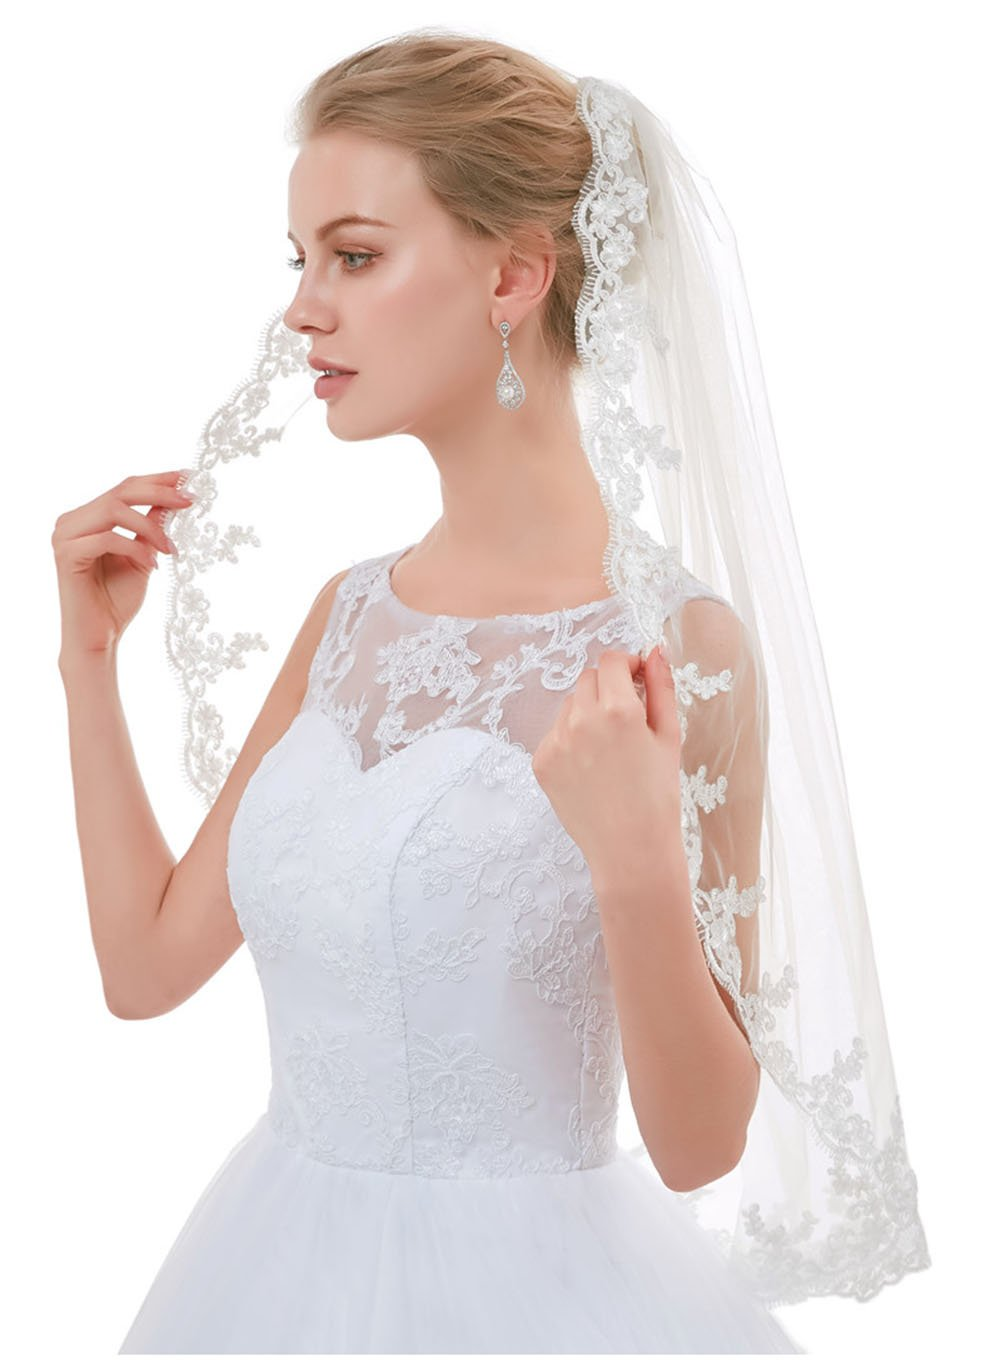 Greenia Lace Edge Tulle 1 Tier Bridal Veil with Comb GN-V23